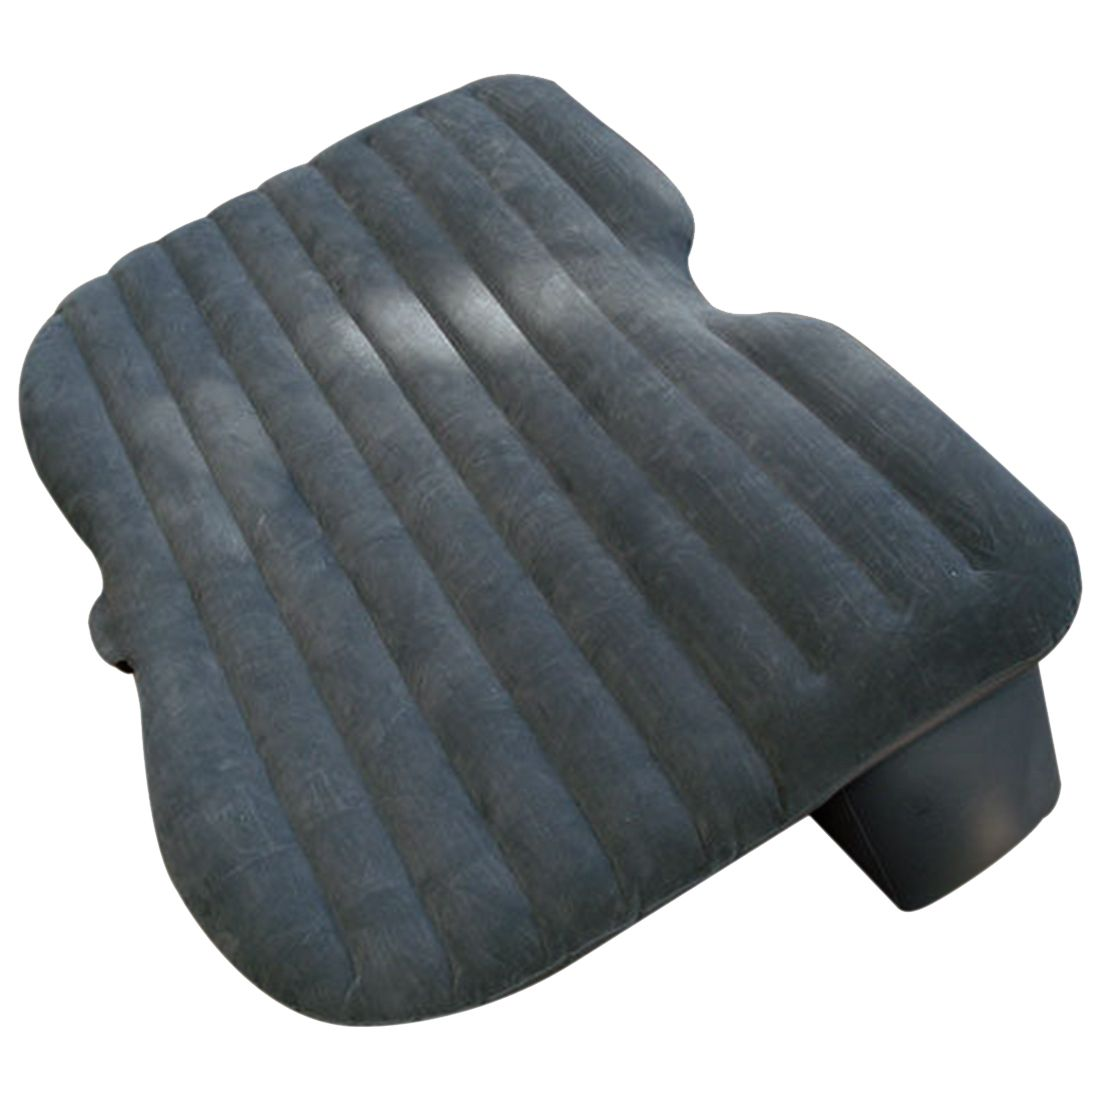 AUTO -Car Air Bed Comfortable Travel Inflatable Car Back Seat Cushion Air Mattress with Air Pump for Camping Trip 5pcs pack medical seat air cushion inflatable for wheelchair square porous anti bedsore buttochs pads with manual pump household